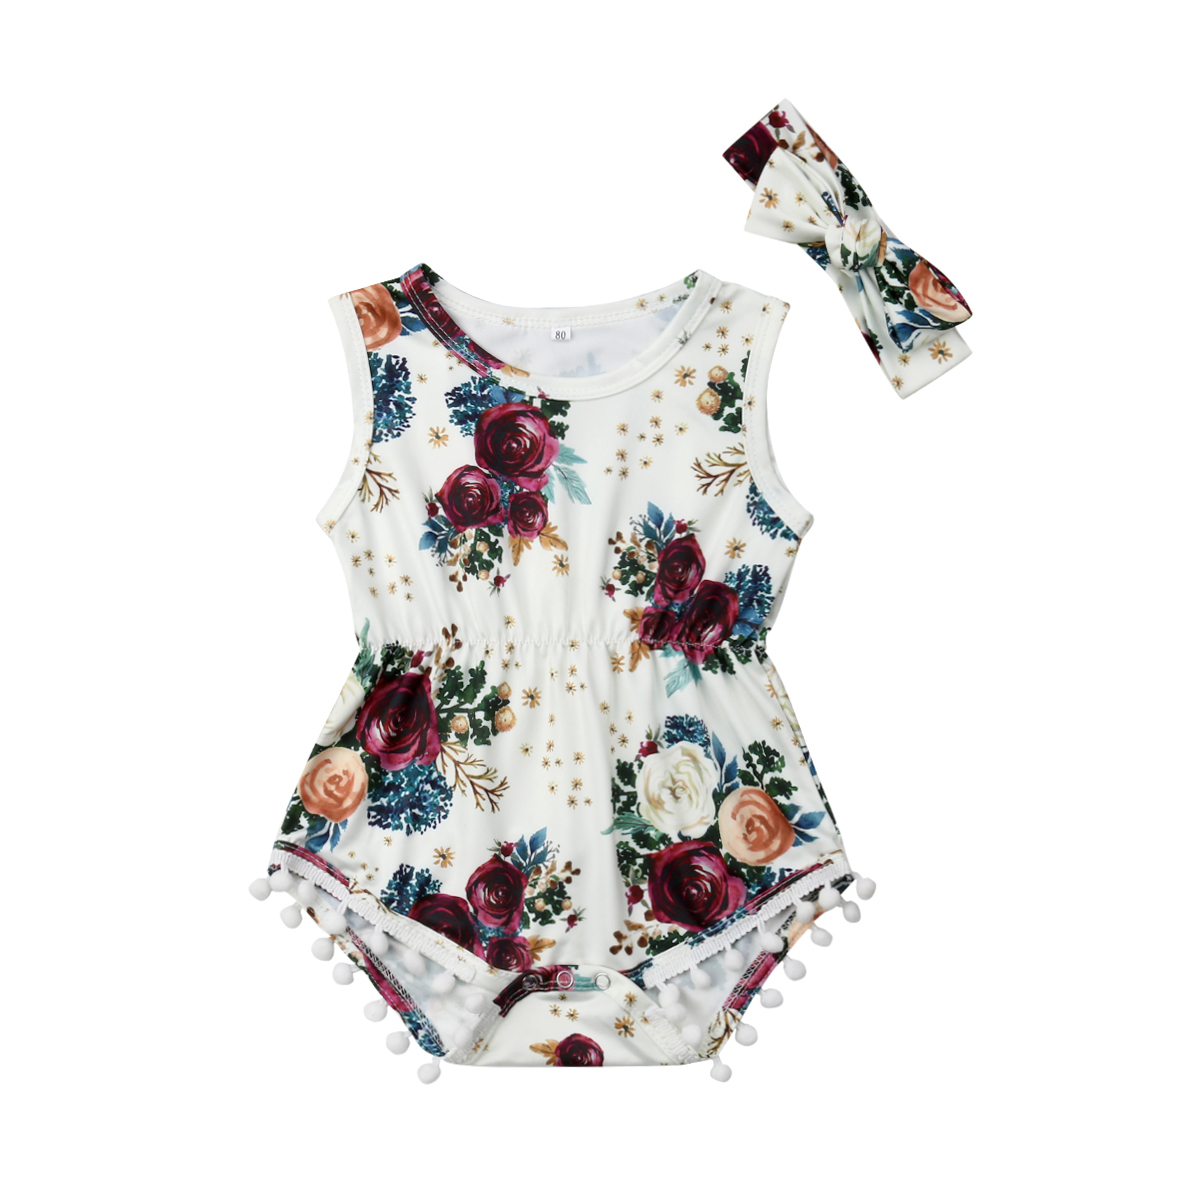 Infant Toddler Baby Girls Tassels Floral Clothing Newborn Baby Girl Romper Jumpsuit+Headband 2PCS Outfits Clothes